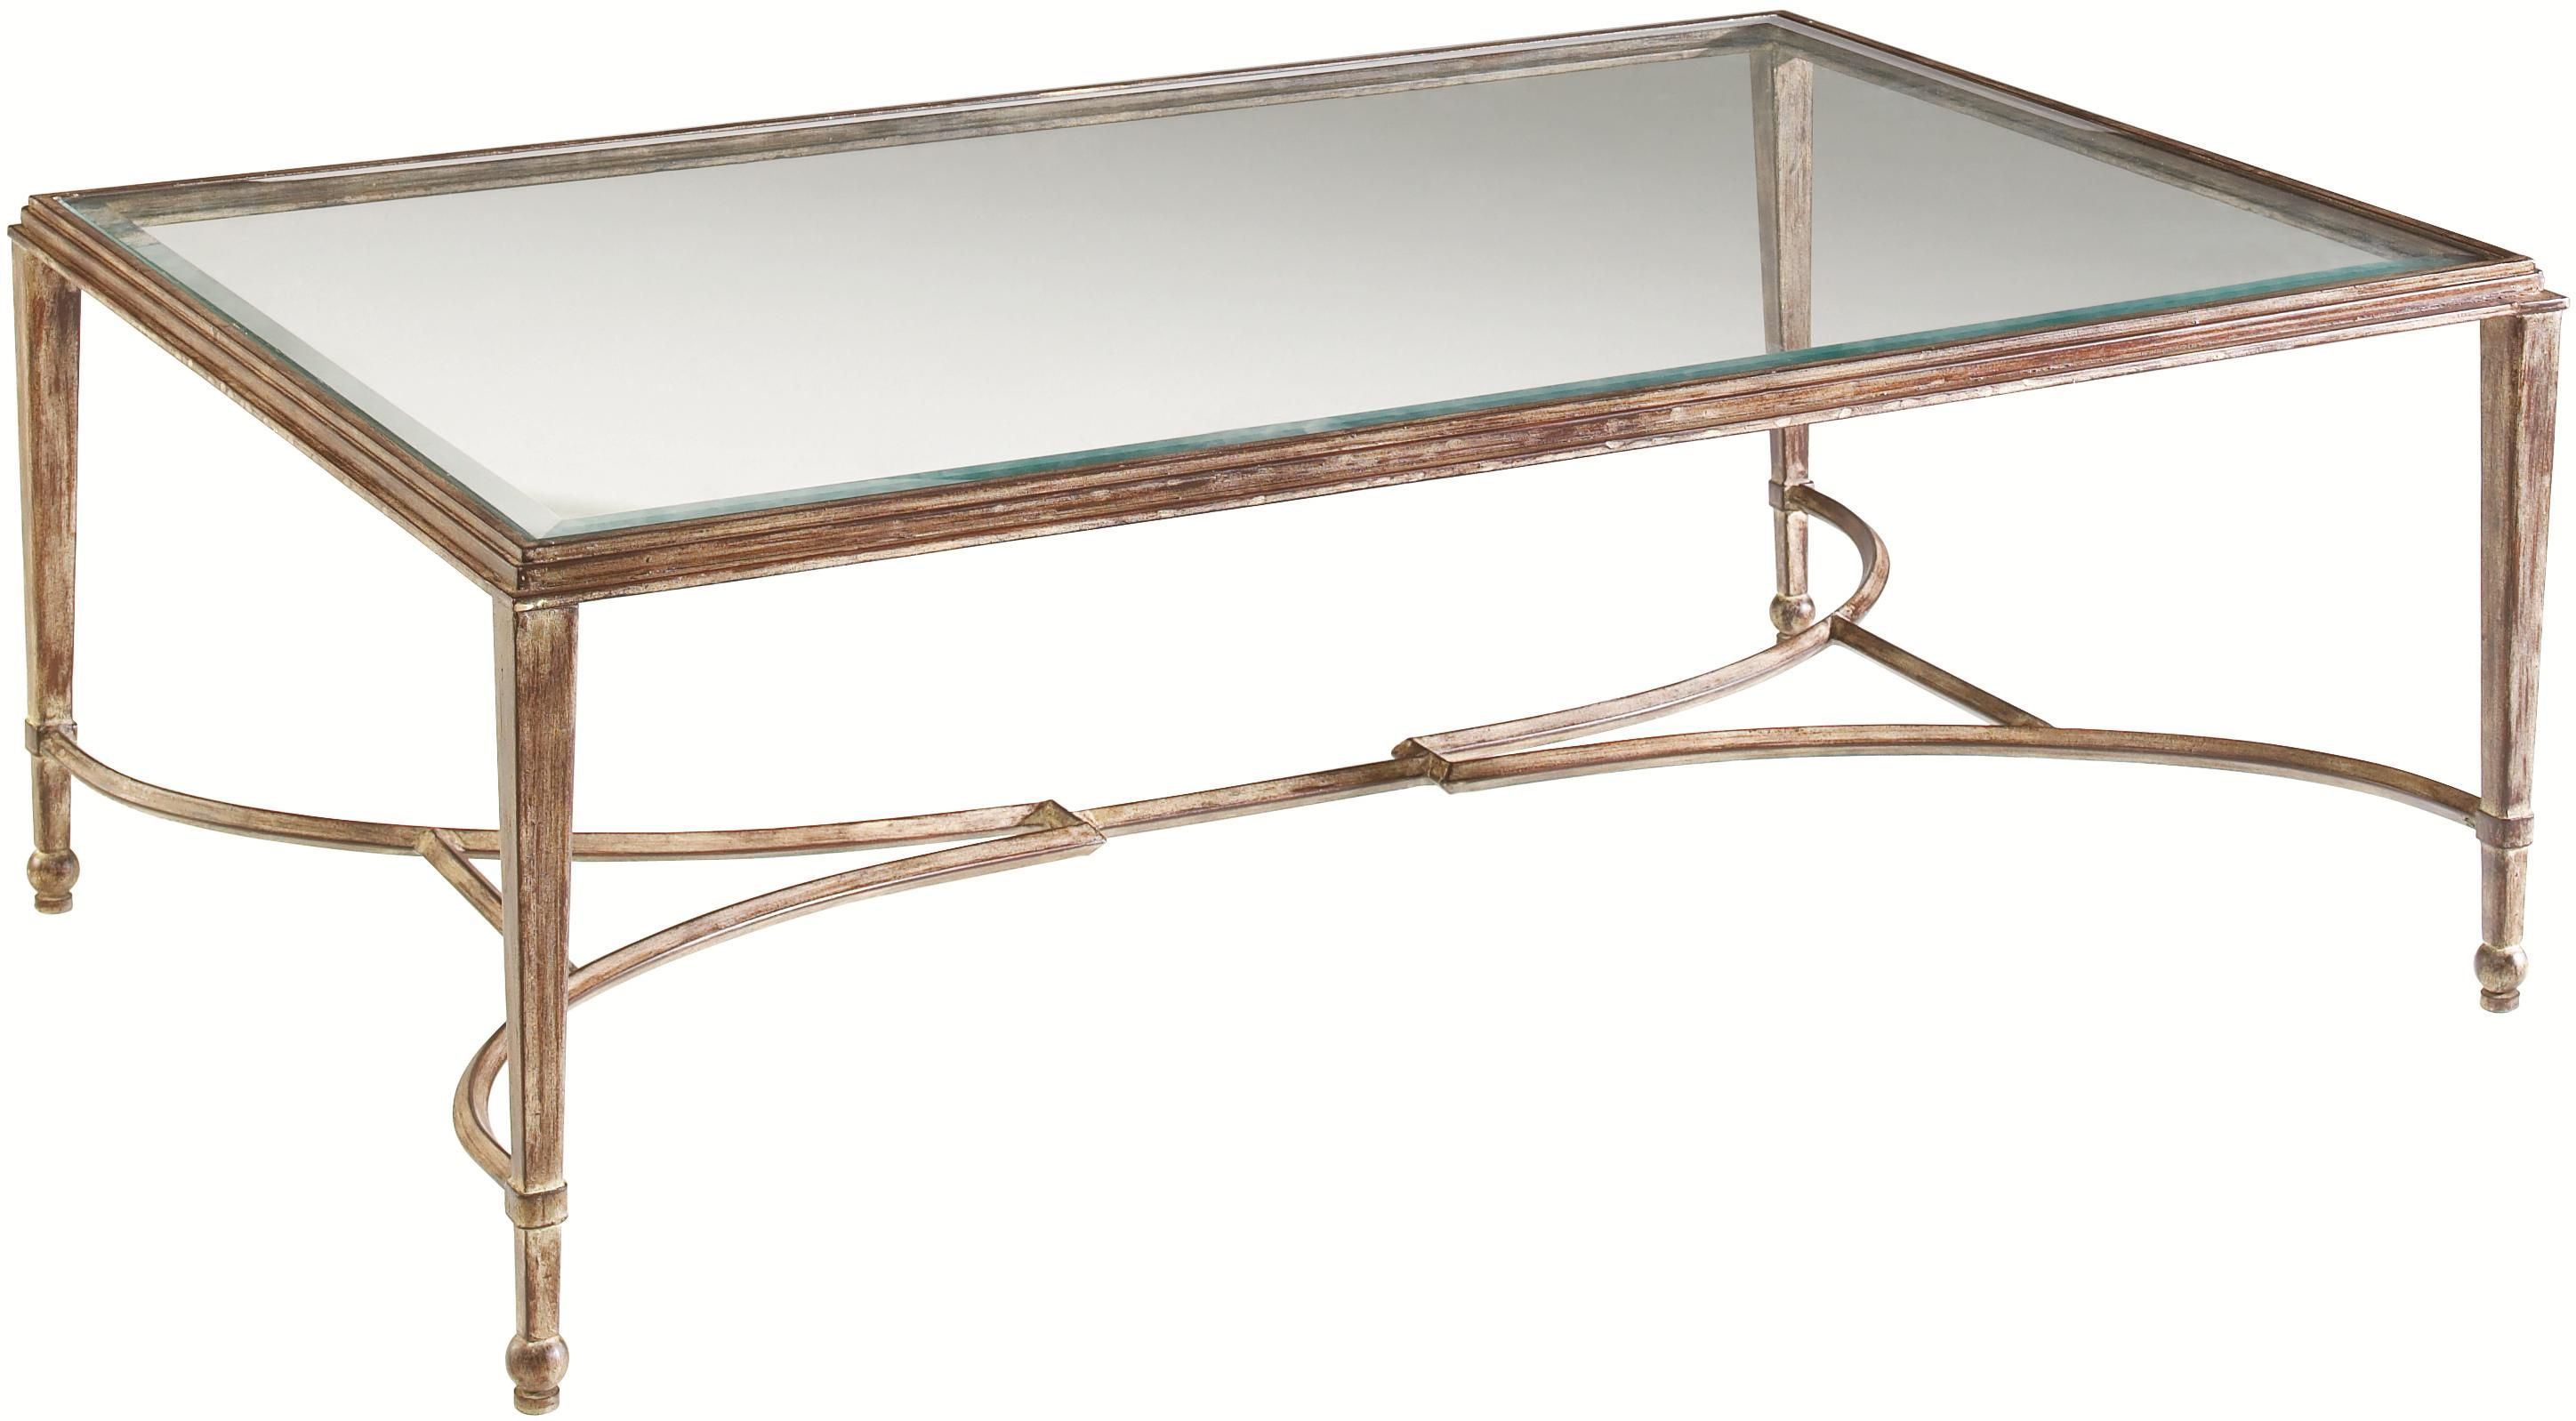 Artistica Sangiovese Rectangular Metal Glass Cocktail Table With